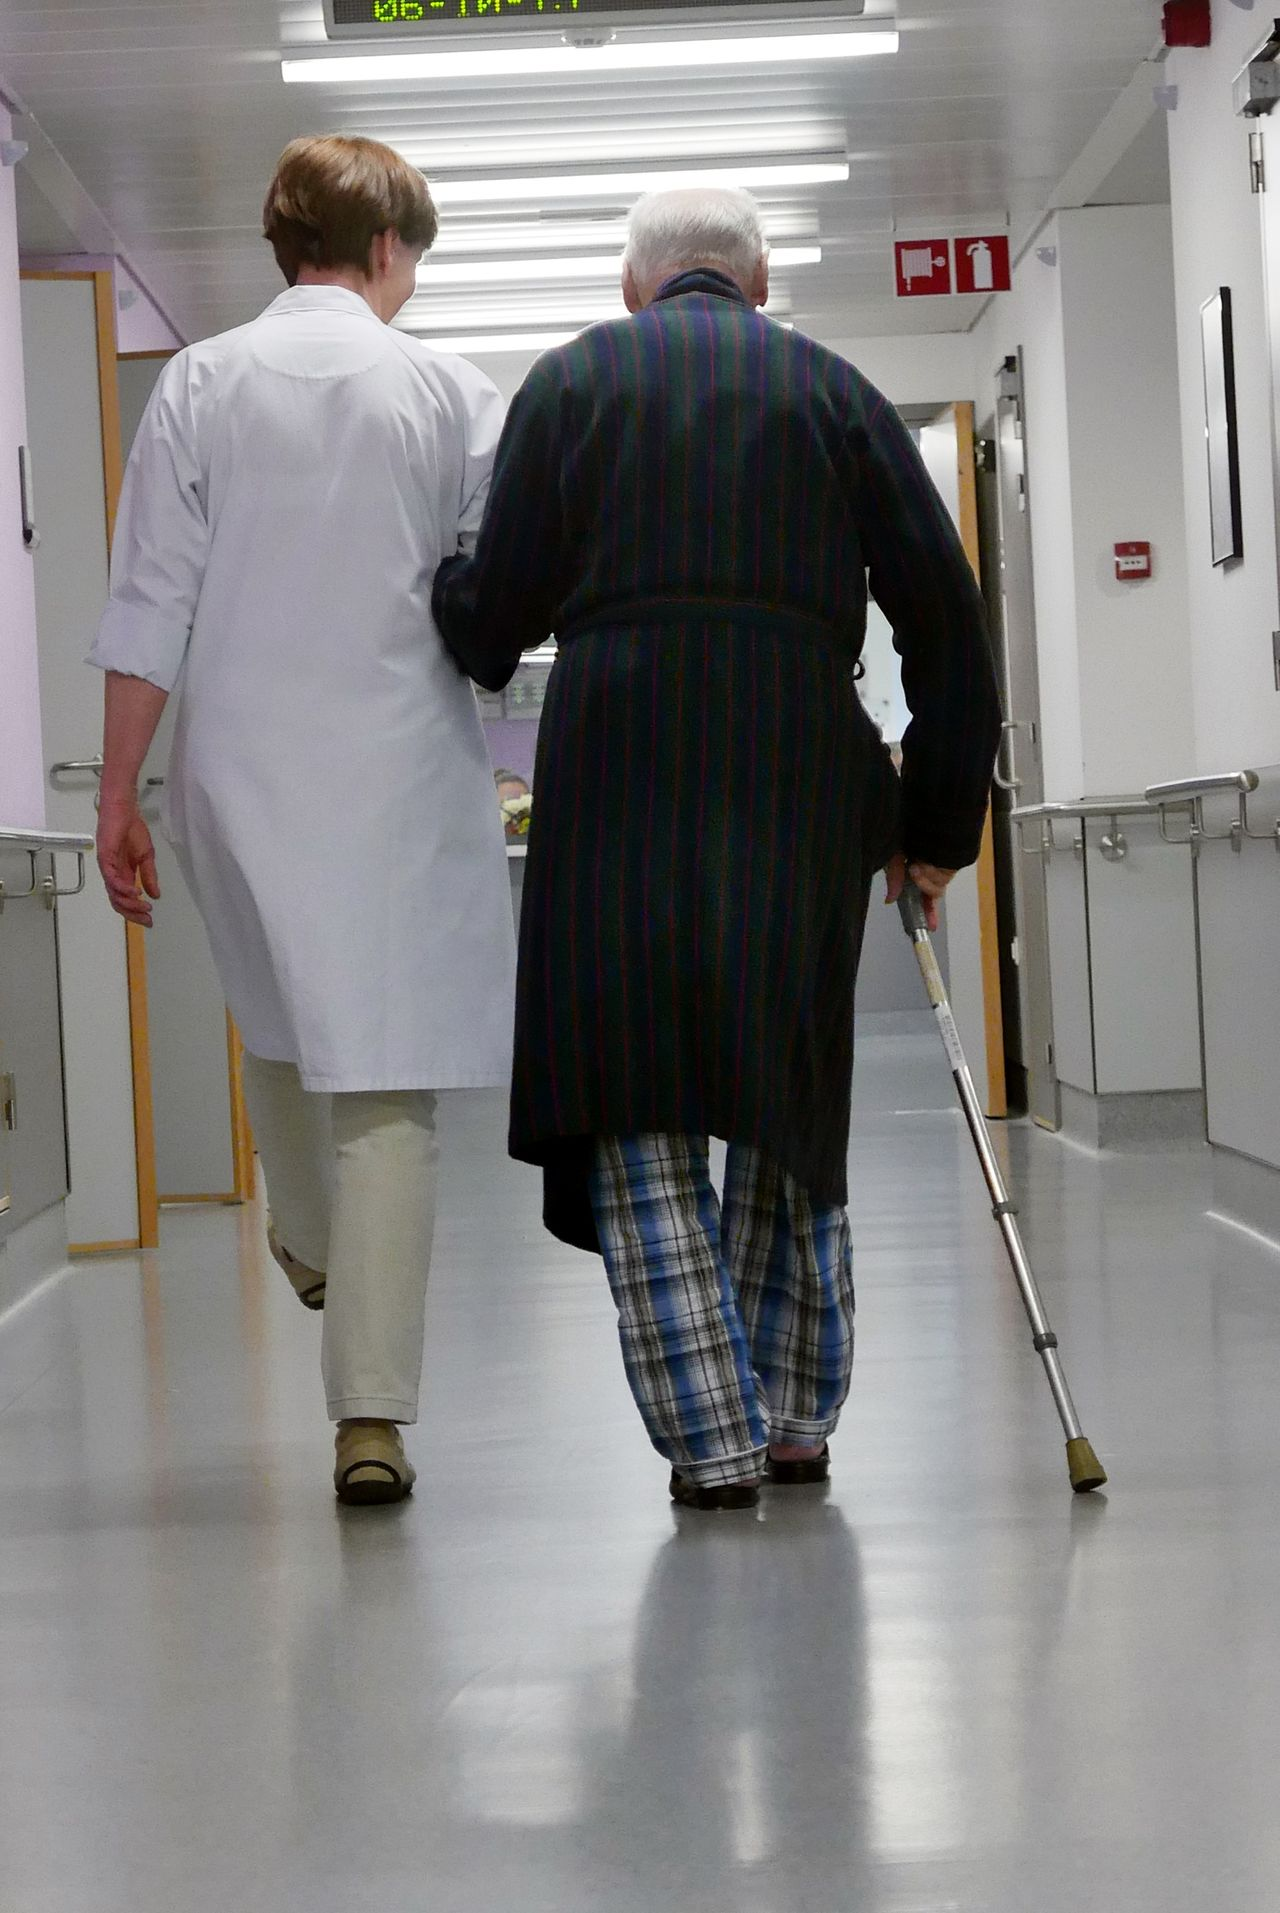 Old Man Walking Nurse Hospital Corridor Exercise Rear View Belgium